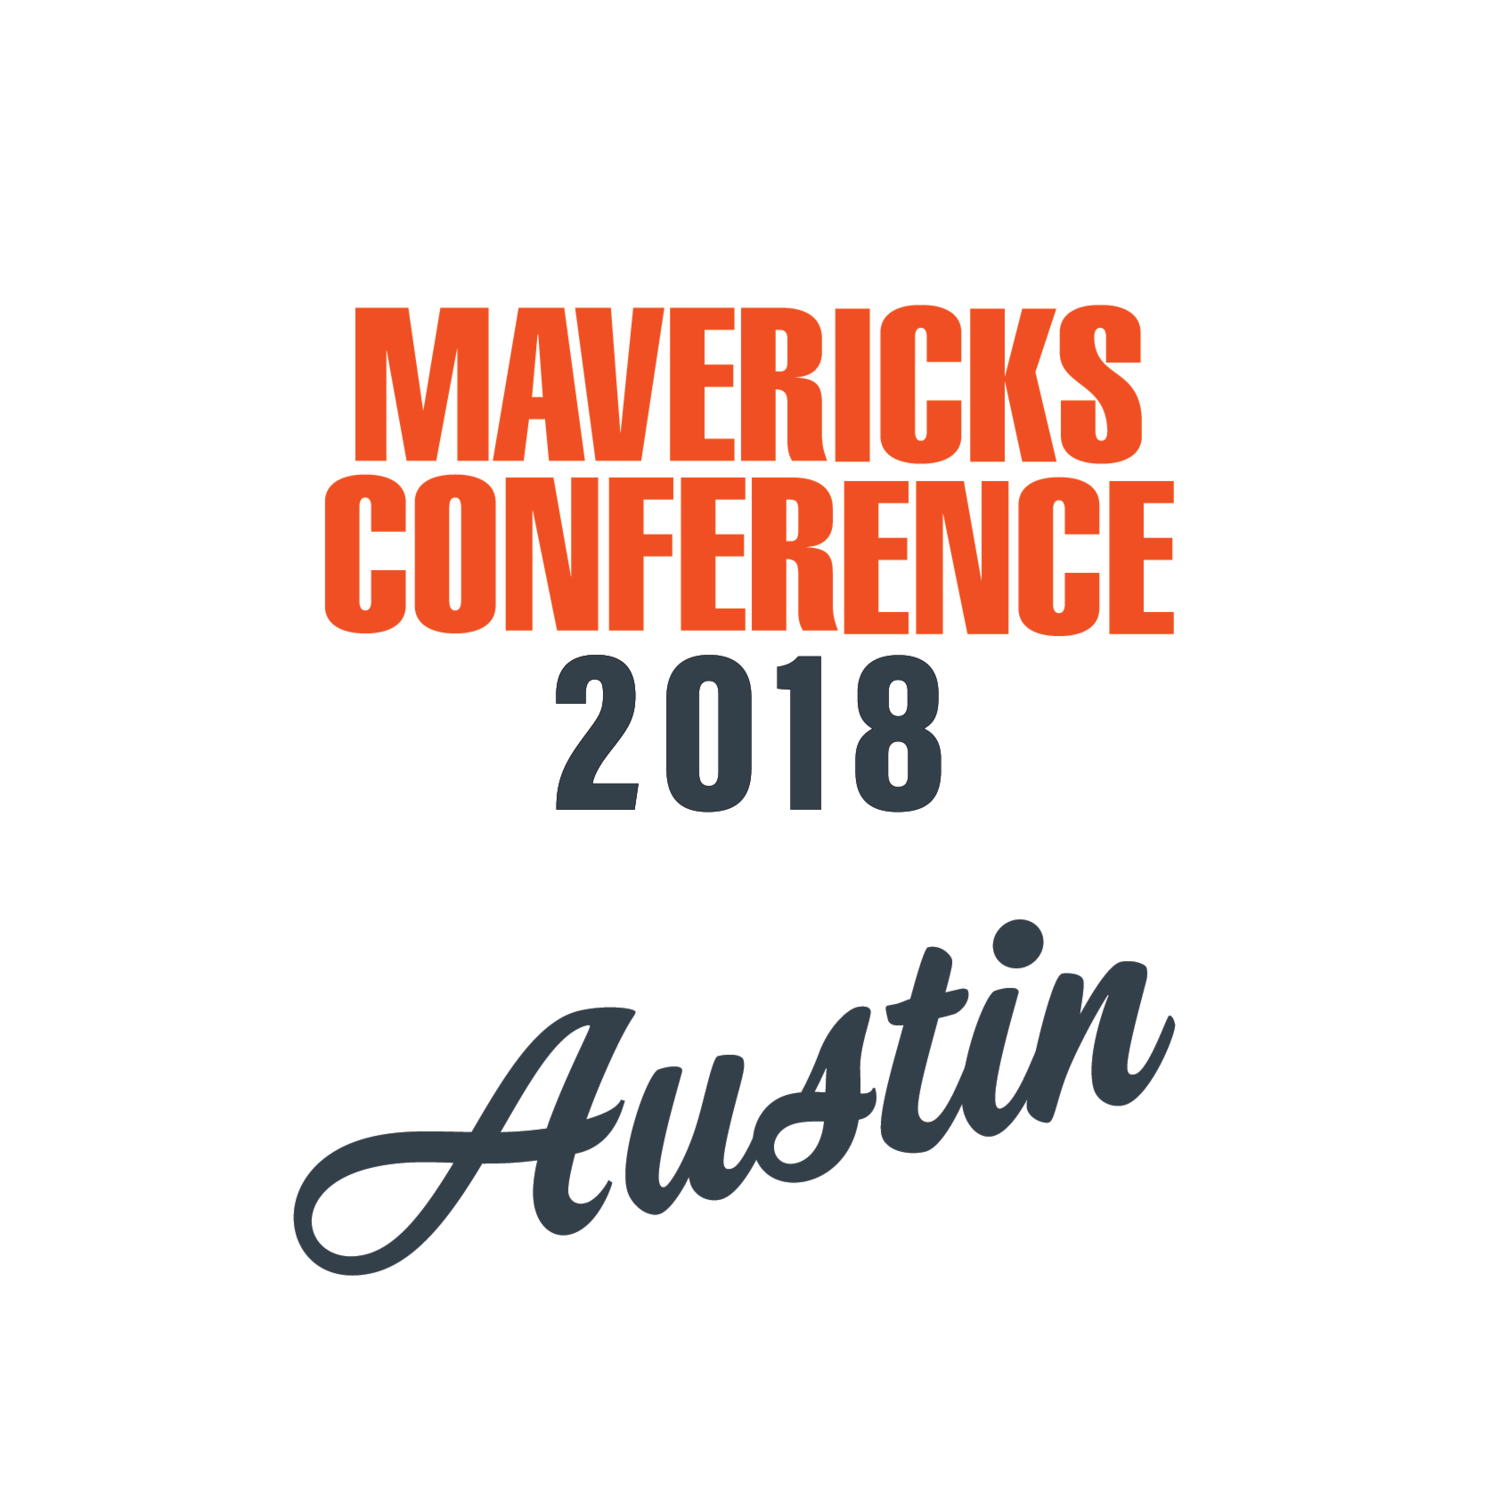 Mavericks Conference